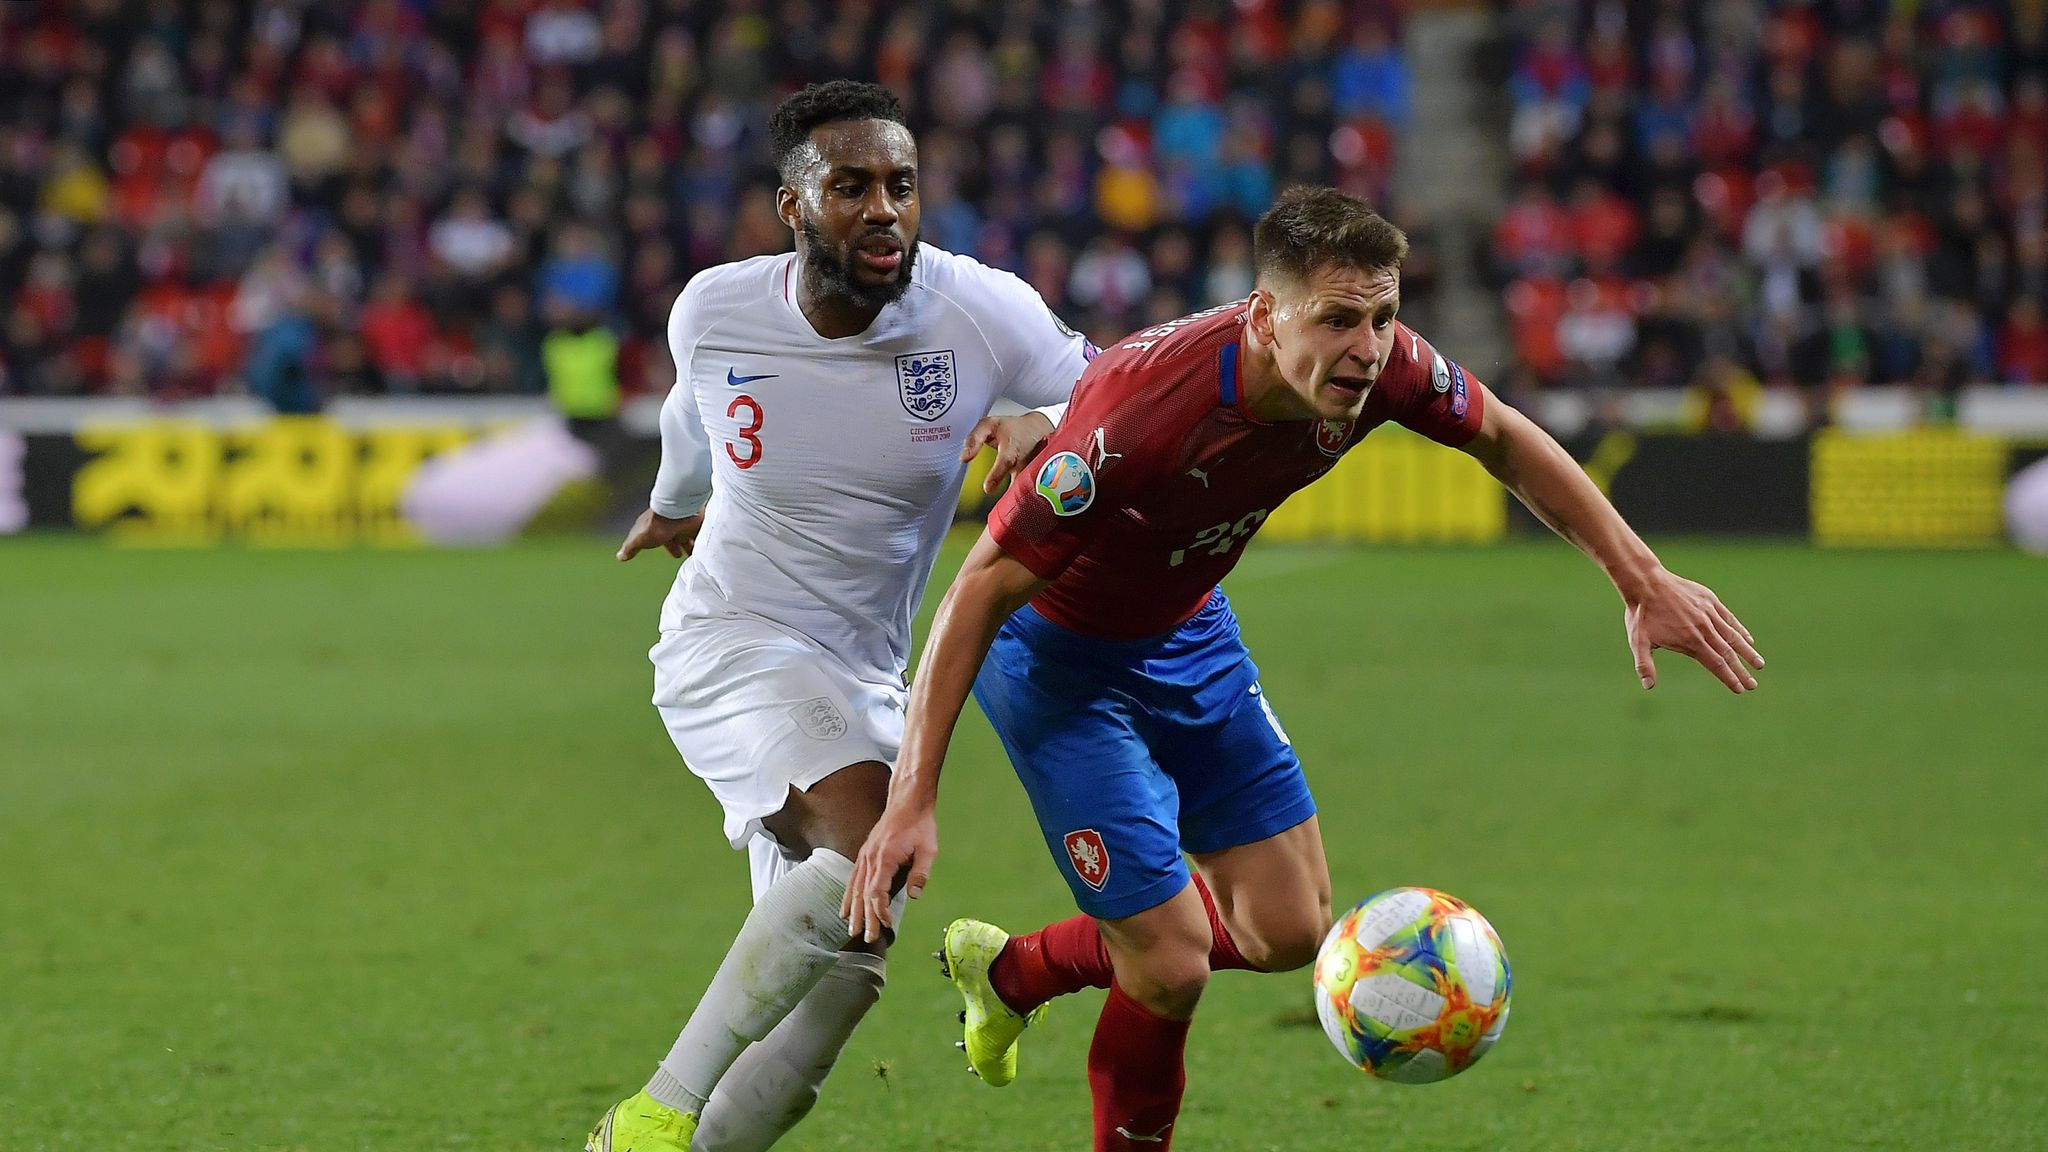 Danny Rose says he will leave Tottenham in 18 months - but will not be forced out